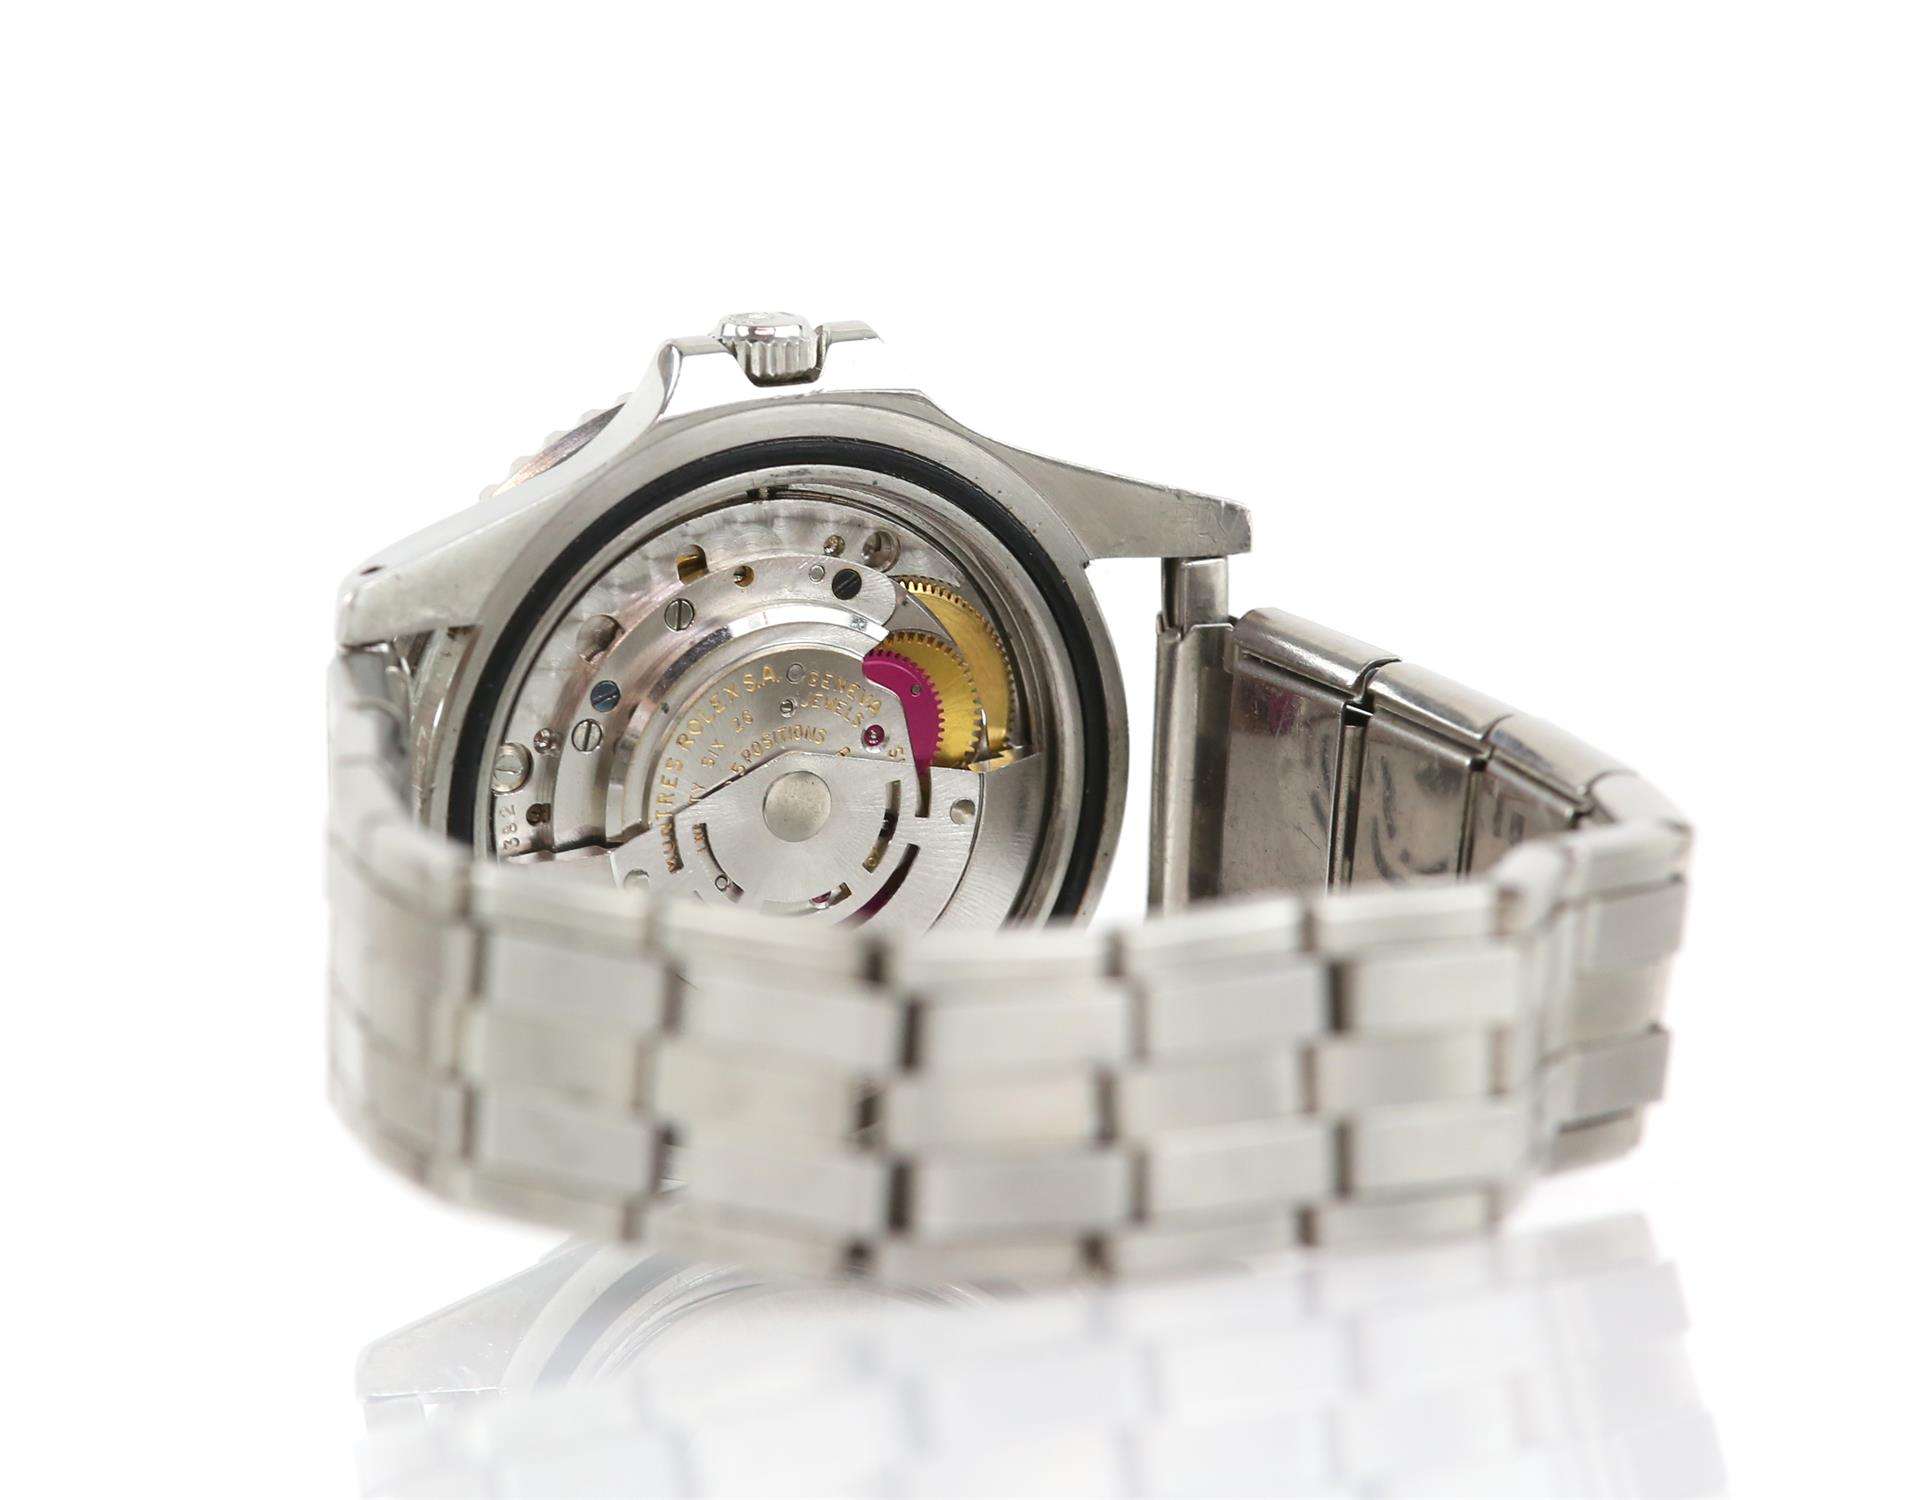 Rolex A gentleman's reference 1675 stainless steel GMT 'ghost dial' wristwatch, the signed dial - Image 2 of 4